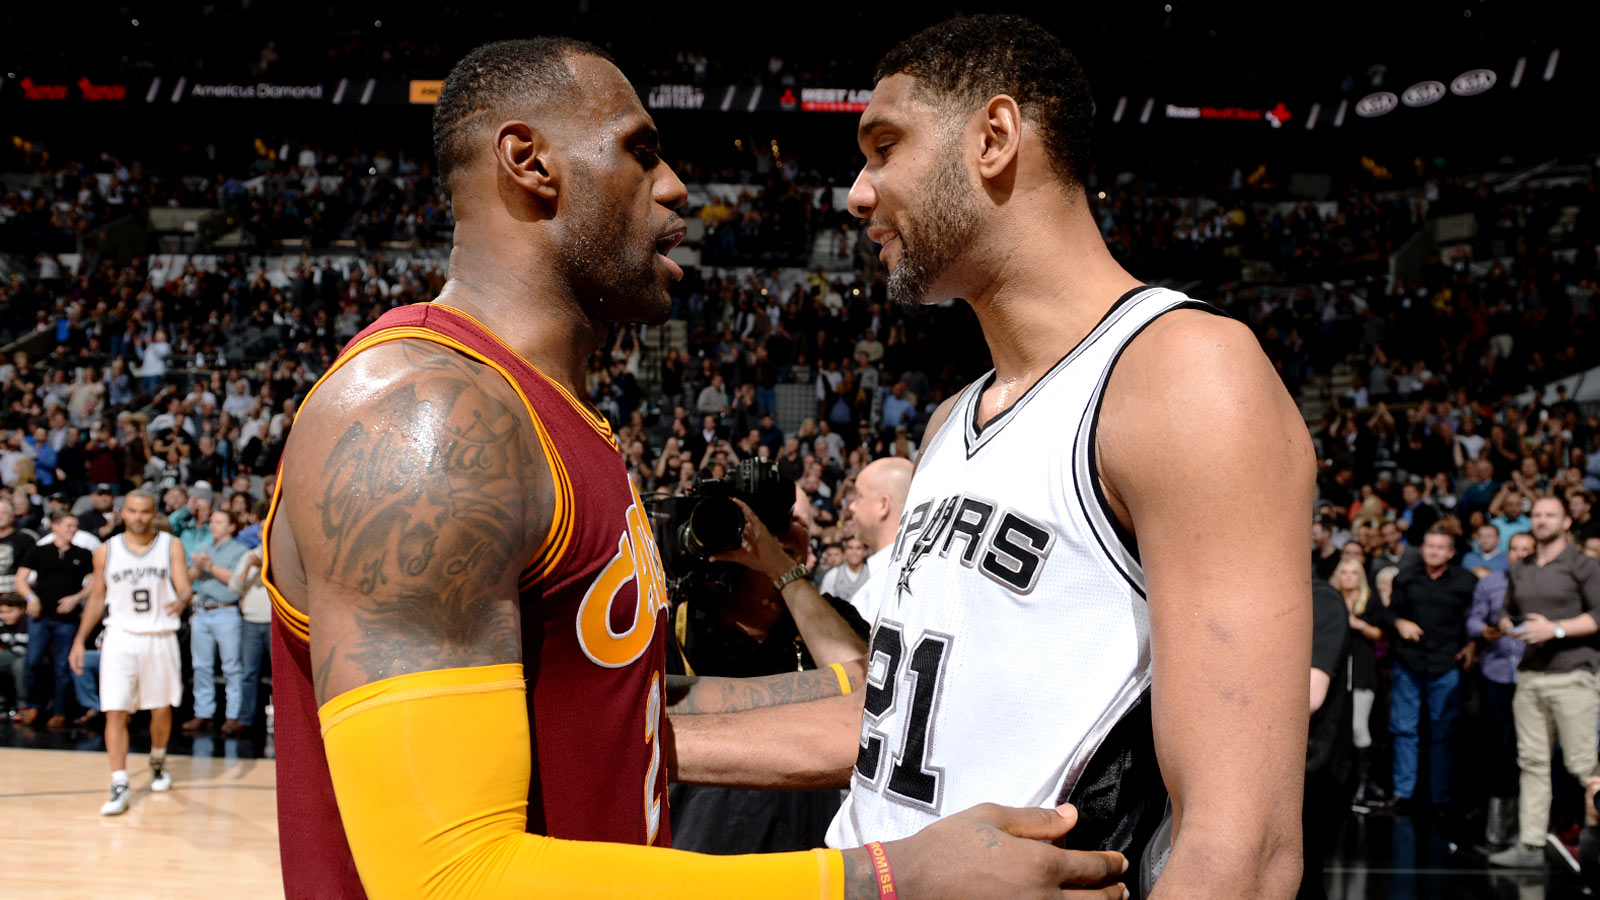 011416-NBA-Cleveland-LeBron-James-San-Antonio-Tim-Duncan-after-a-game-MM-PI